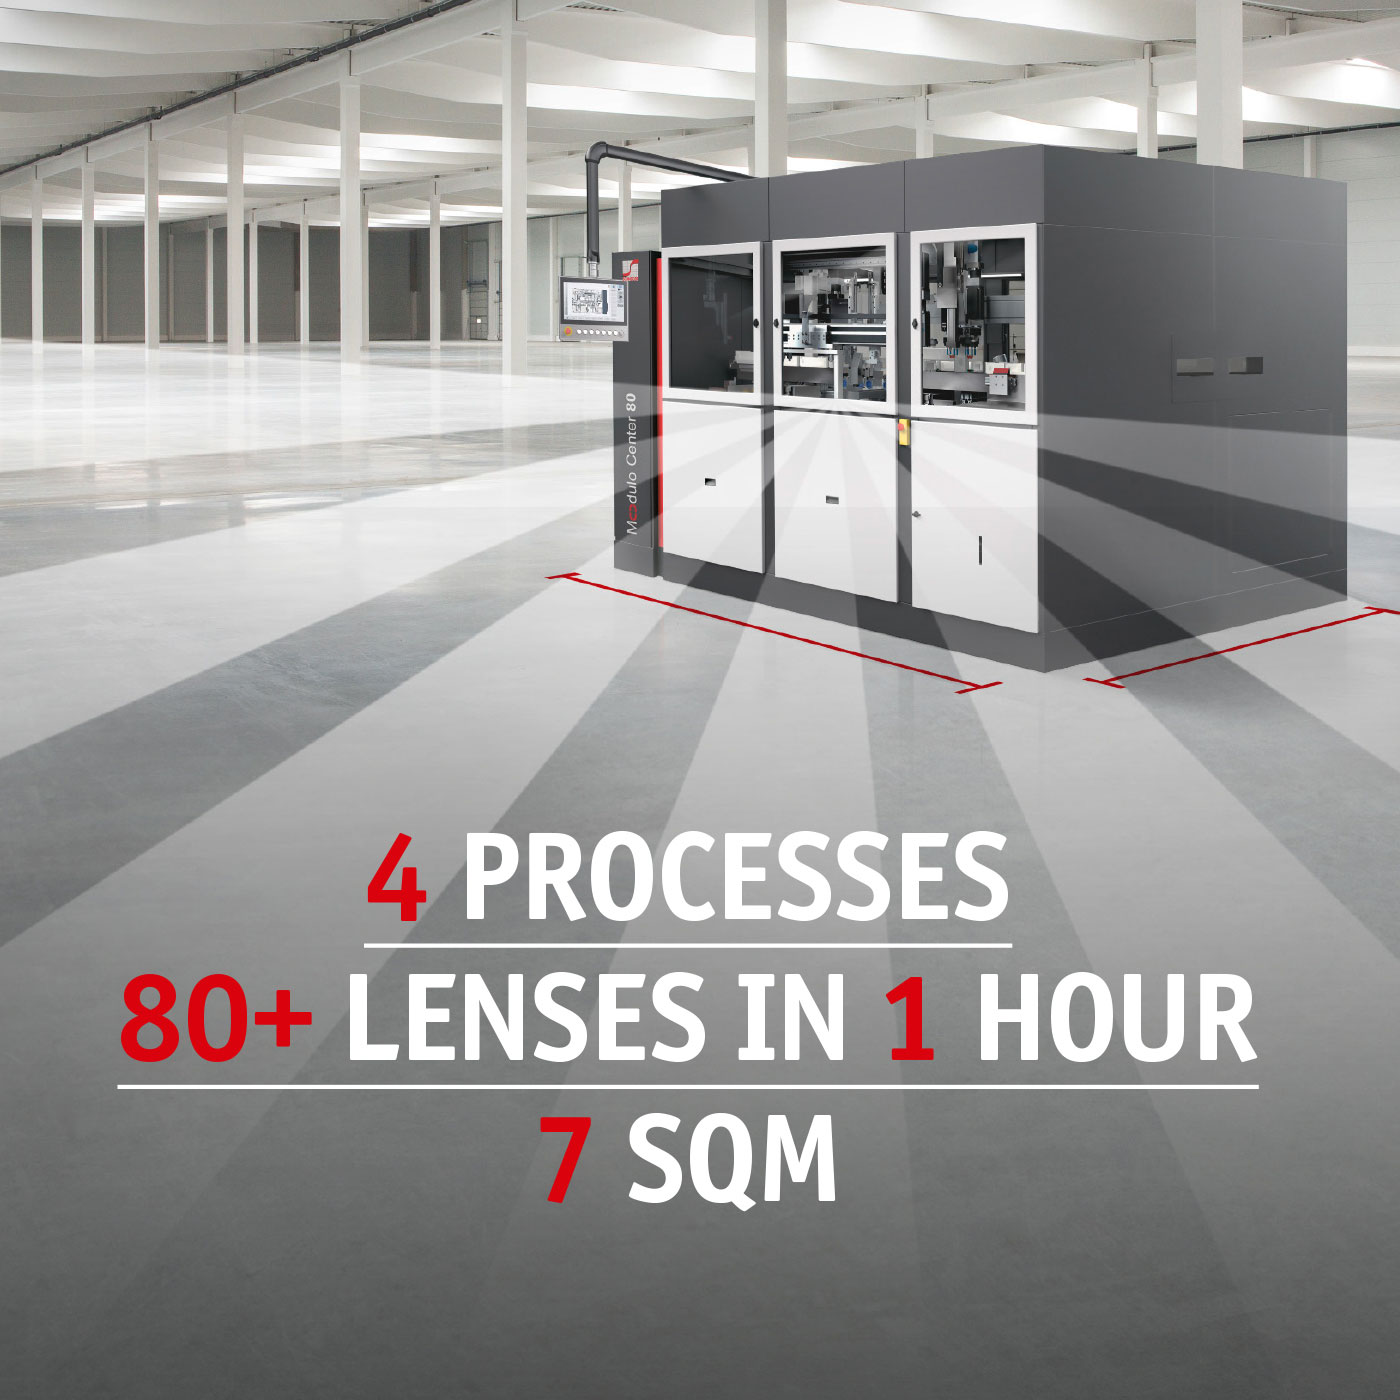 The MC 80 offers 4 processes in one with 80+ lenses per hour on just 7 square meters